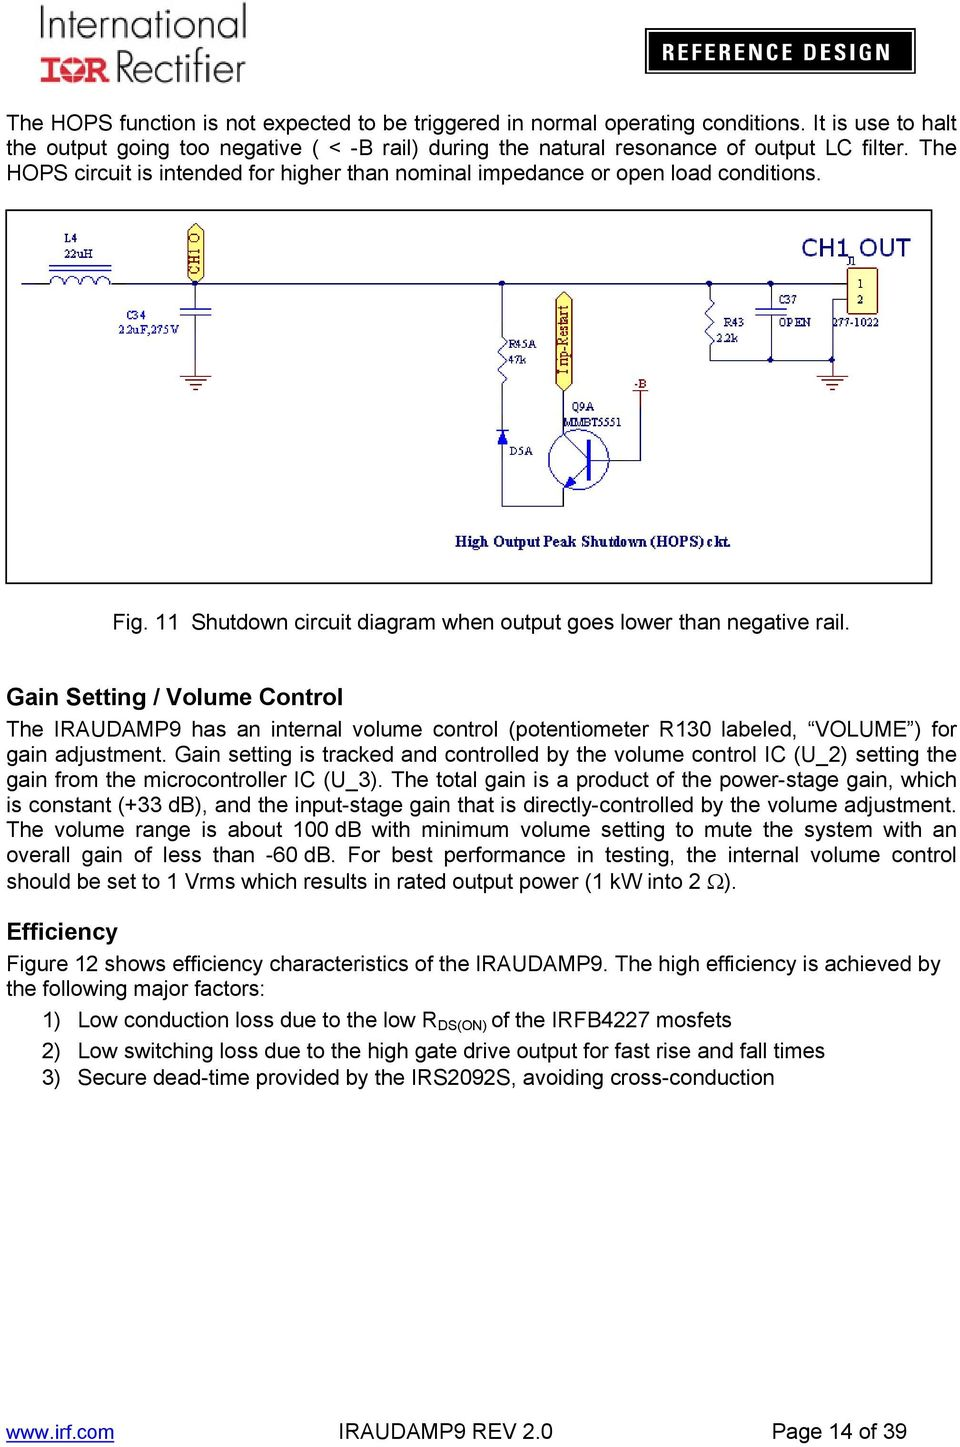 Iraudamp Kw 2 Single Channel Class D Audio Power Amplifier Using Circuit Dynamic With Ic Dmos Tda7294 Bridge Gain Setting Volume Control The Iraudamp9 Has An Internal Potentiometer R130 Labeled